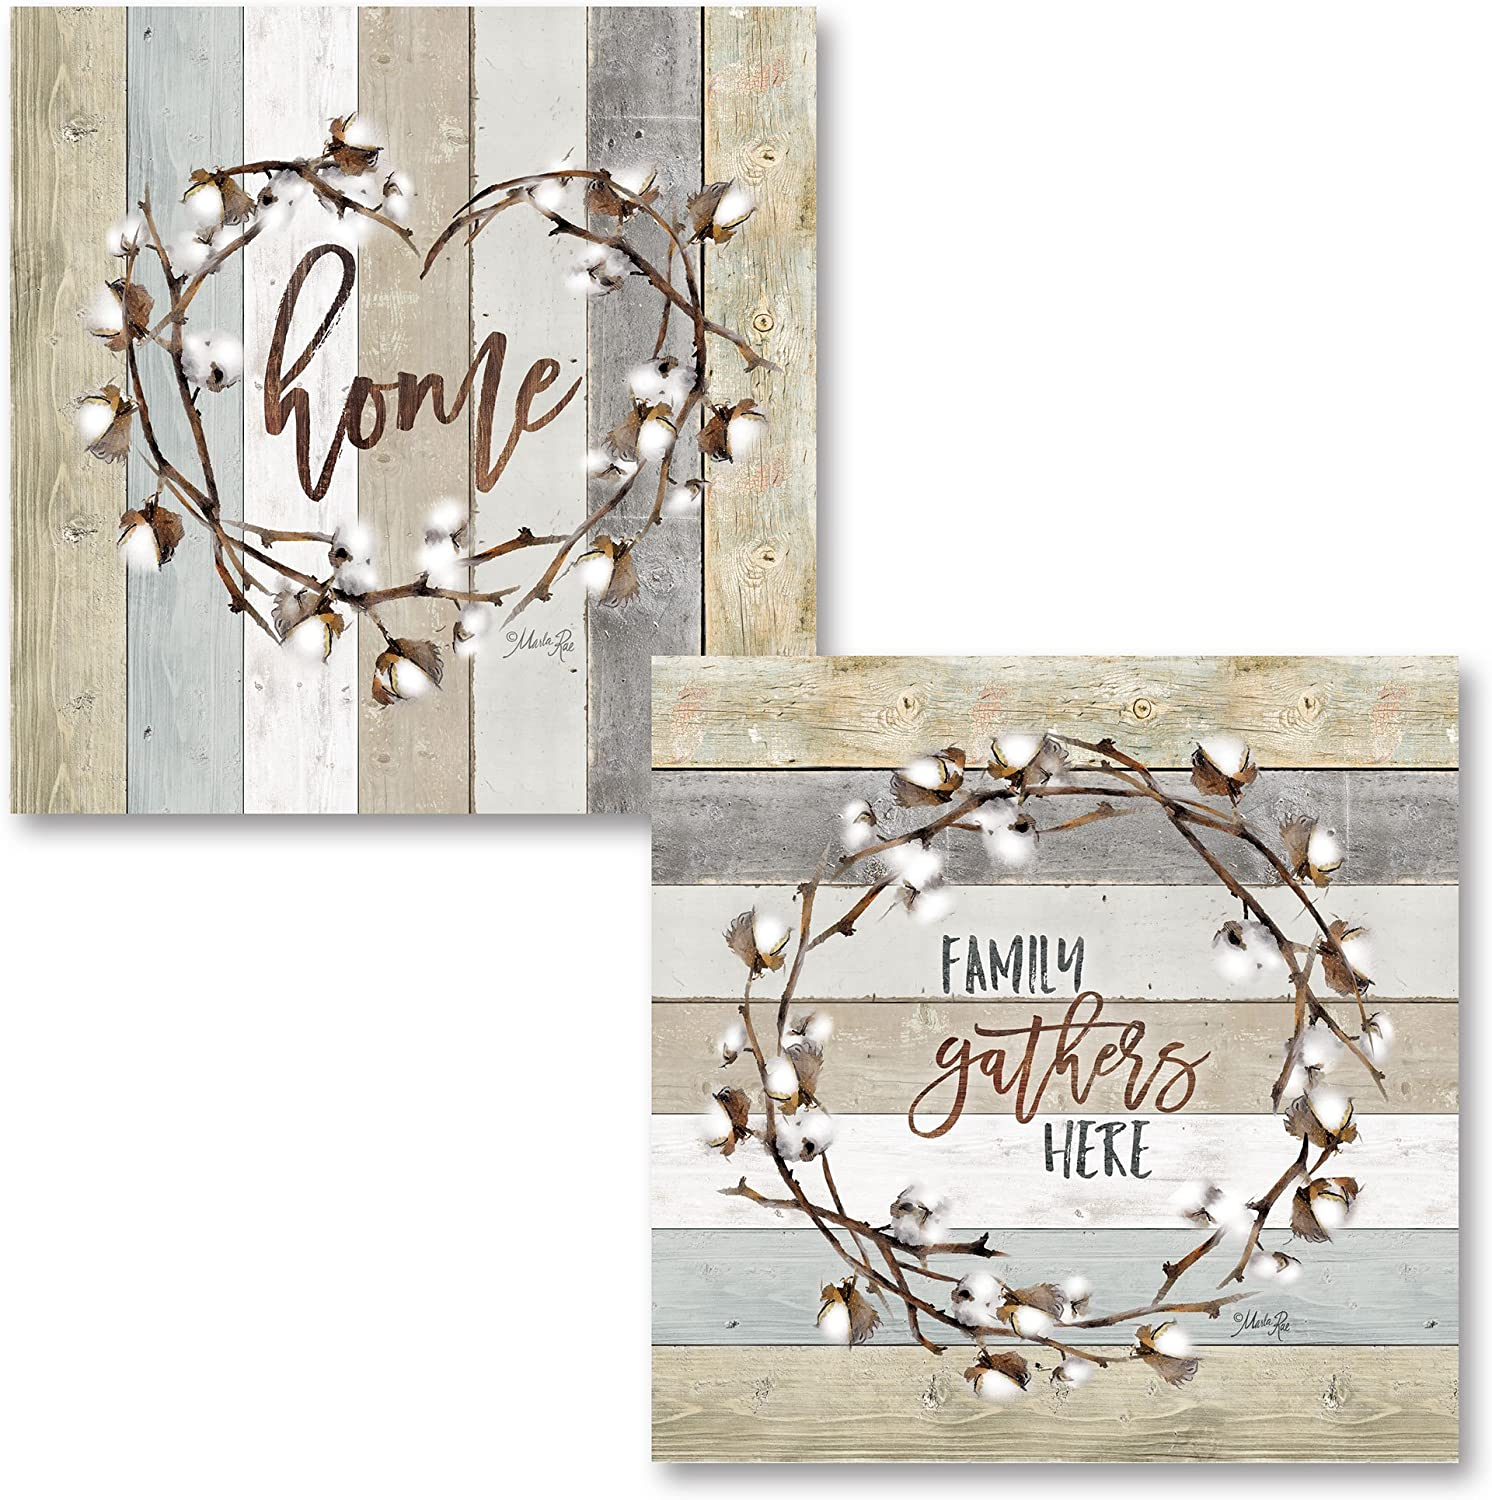 Gango Home Decor Contemporary Family Gathers Here Cotton Wreath & Home Cotton Wreath by Marla Rae (Printed on Paper); Two 12x12in Unframed Paper Posters